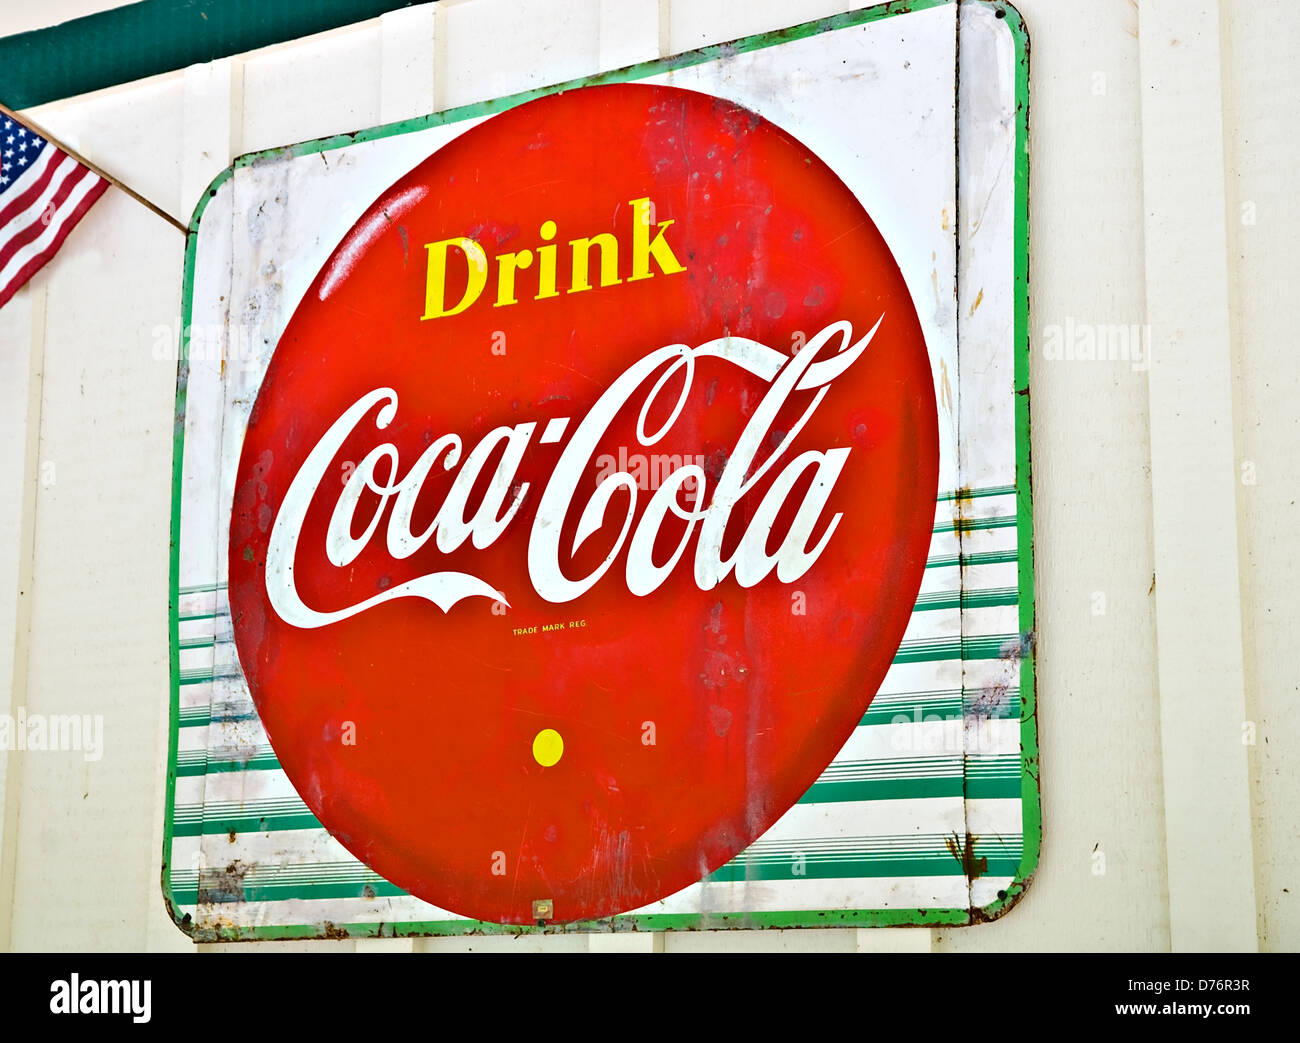 An old metal Coca-Cola sign on the side of a building. - Stock Image